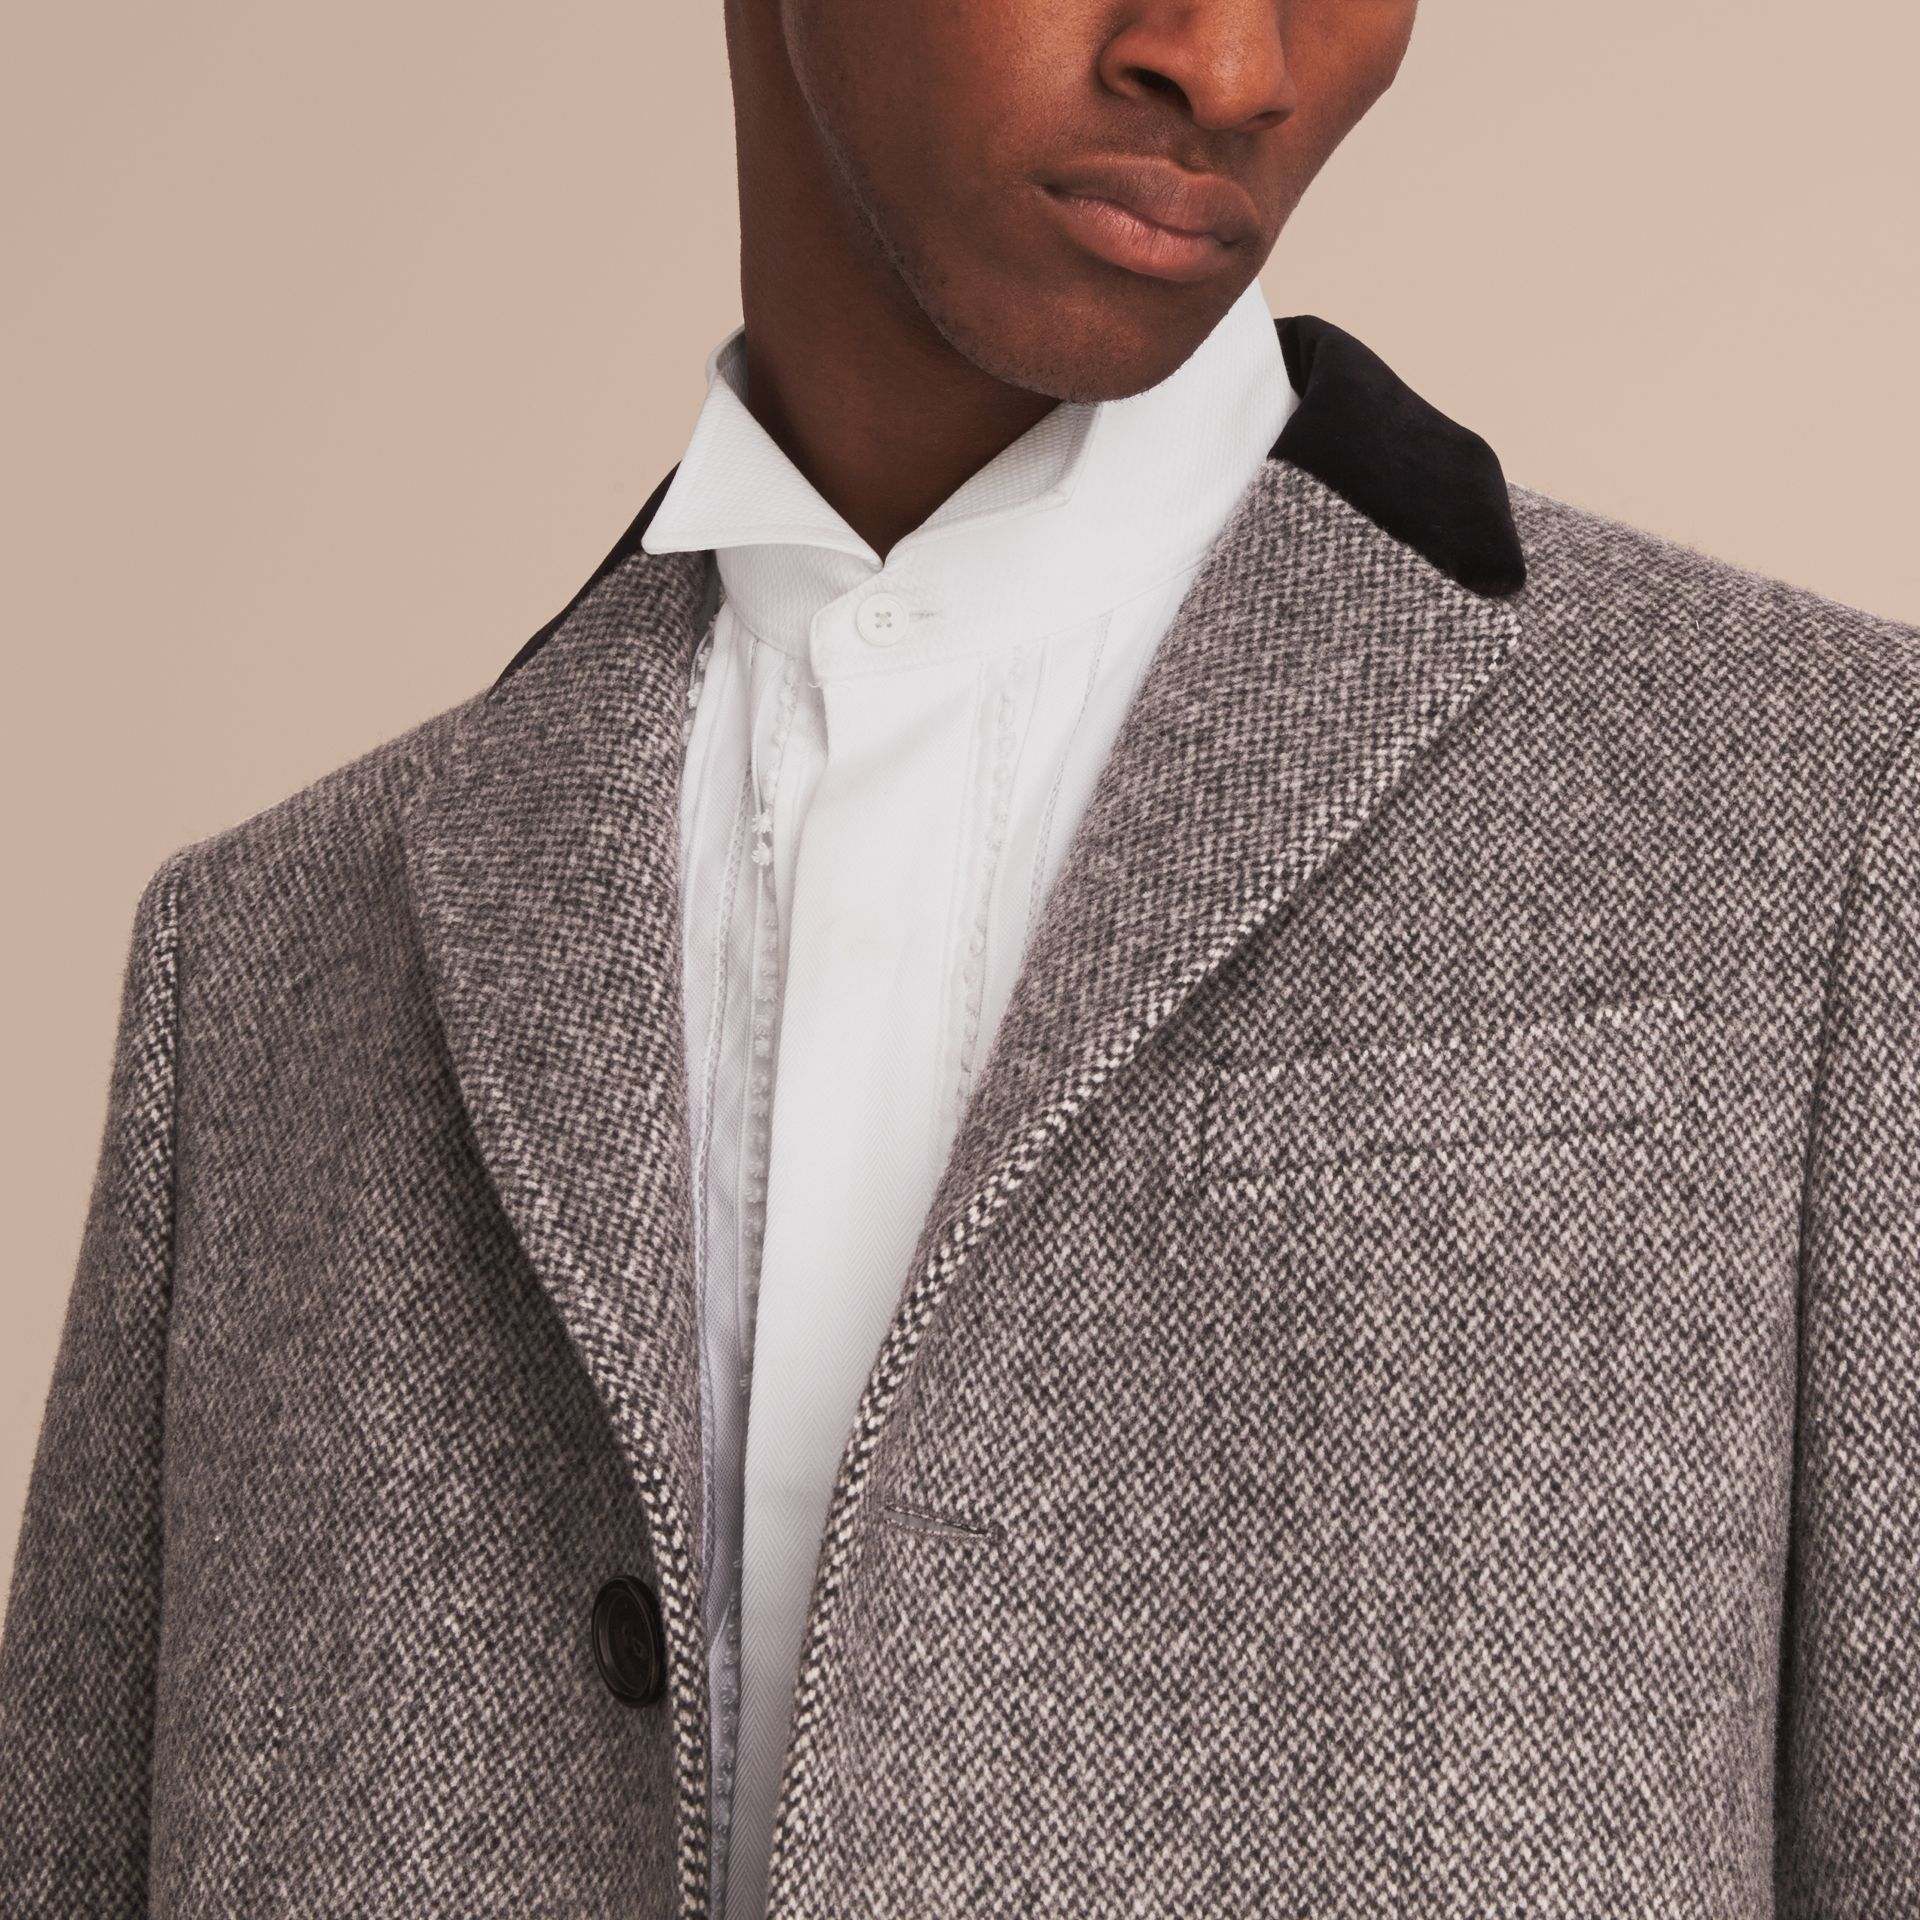 Velvet Collar Wool Tweed Topcoat in Black - Men | Burberry - gallery image 5